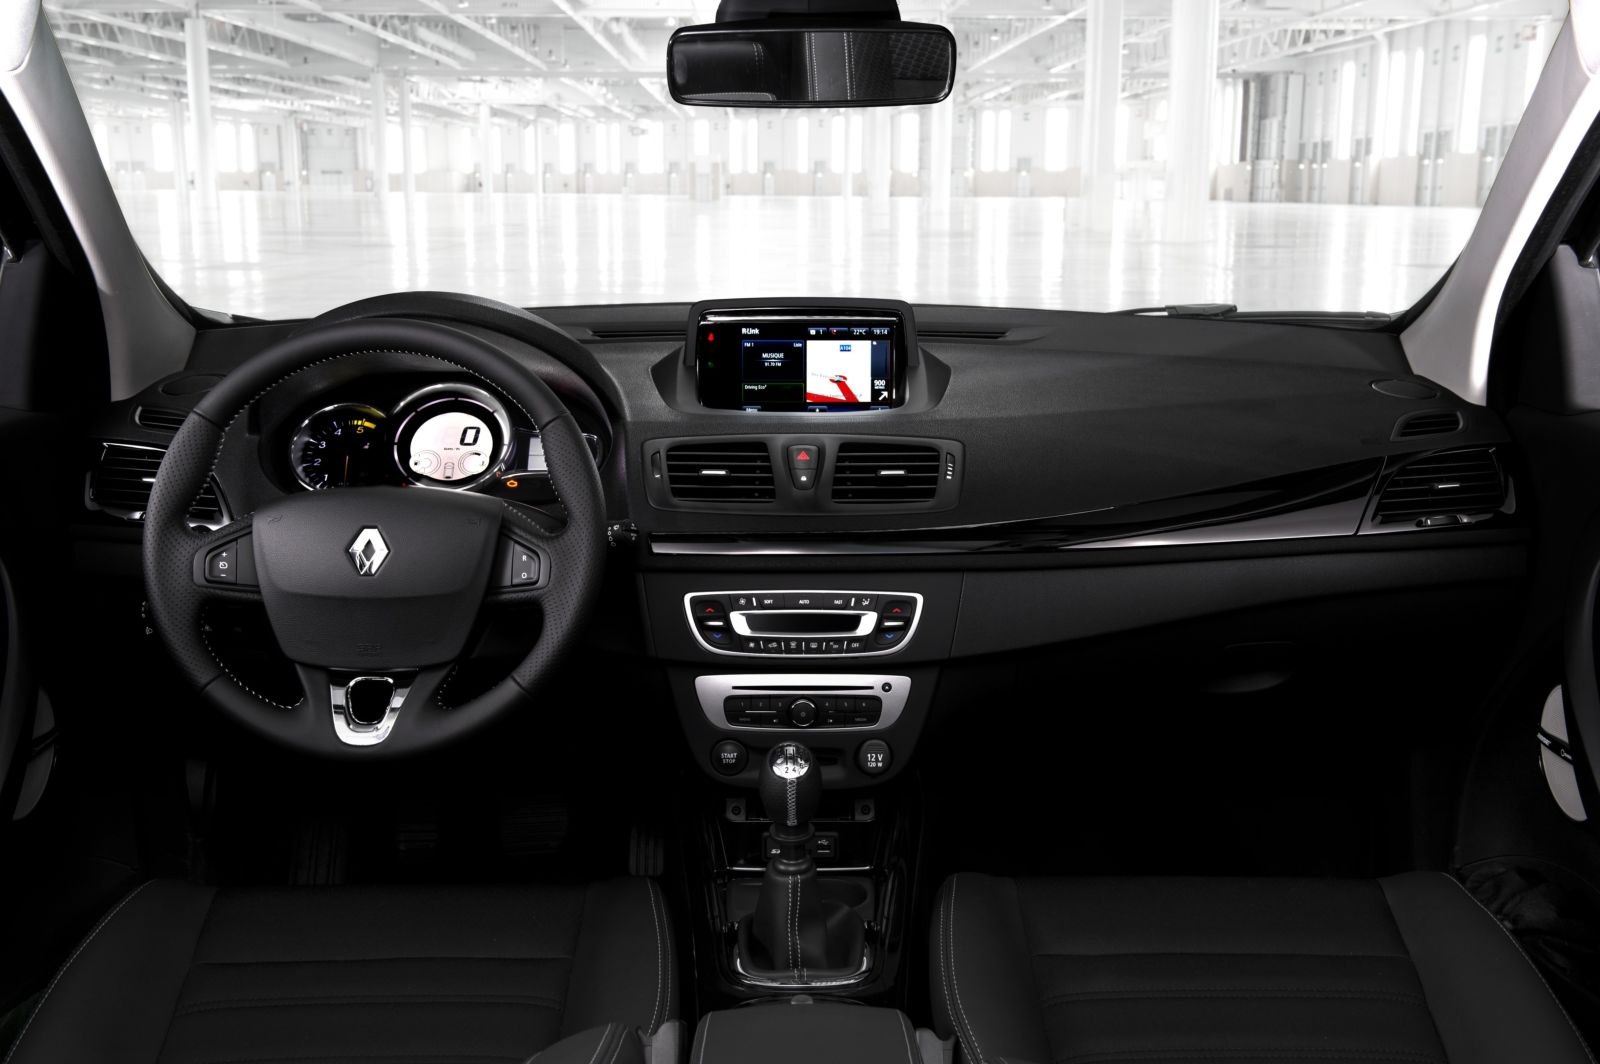 Renault megane collection 2014 restylage phase 3 for Interieur nouvelle megane